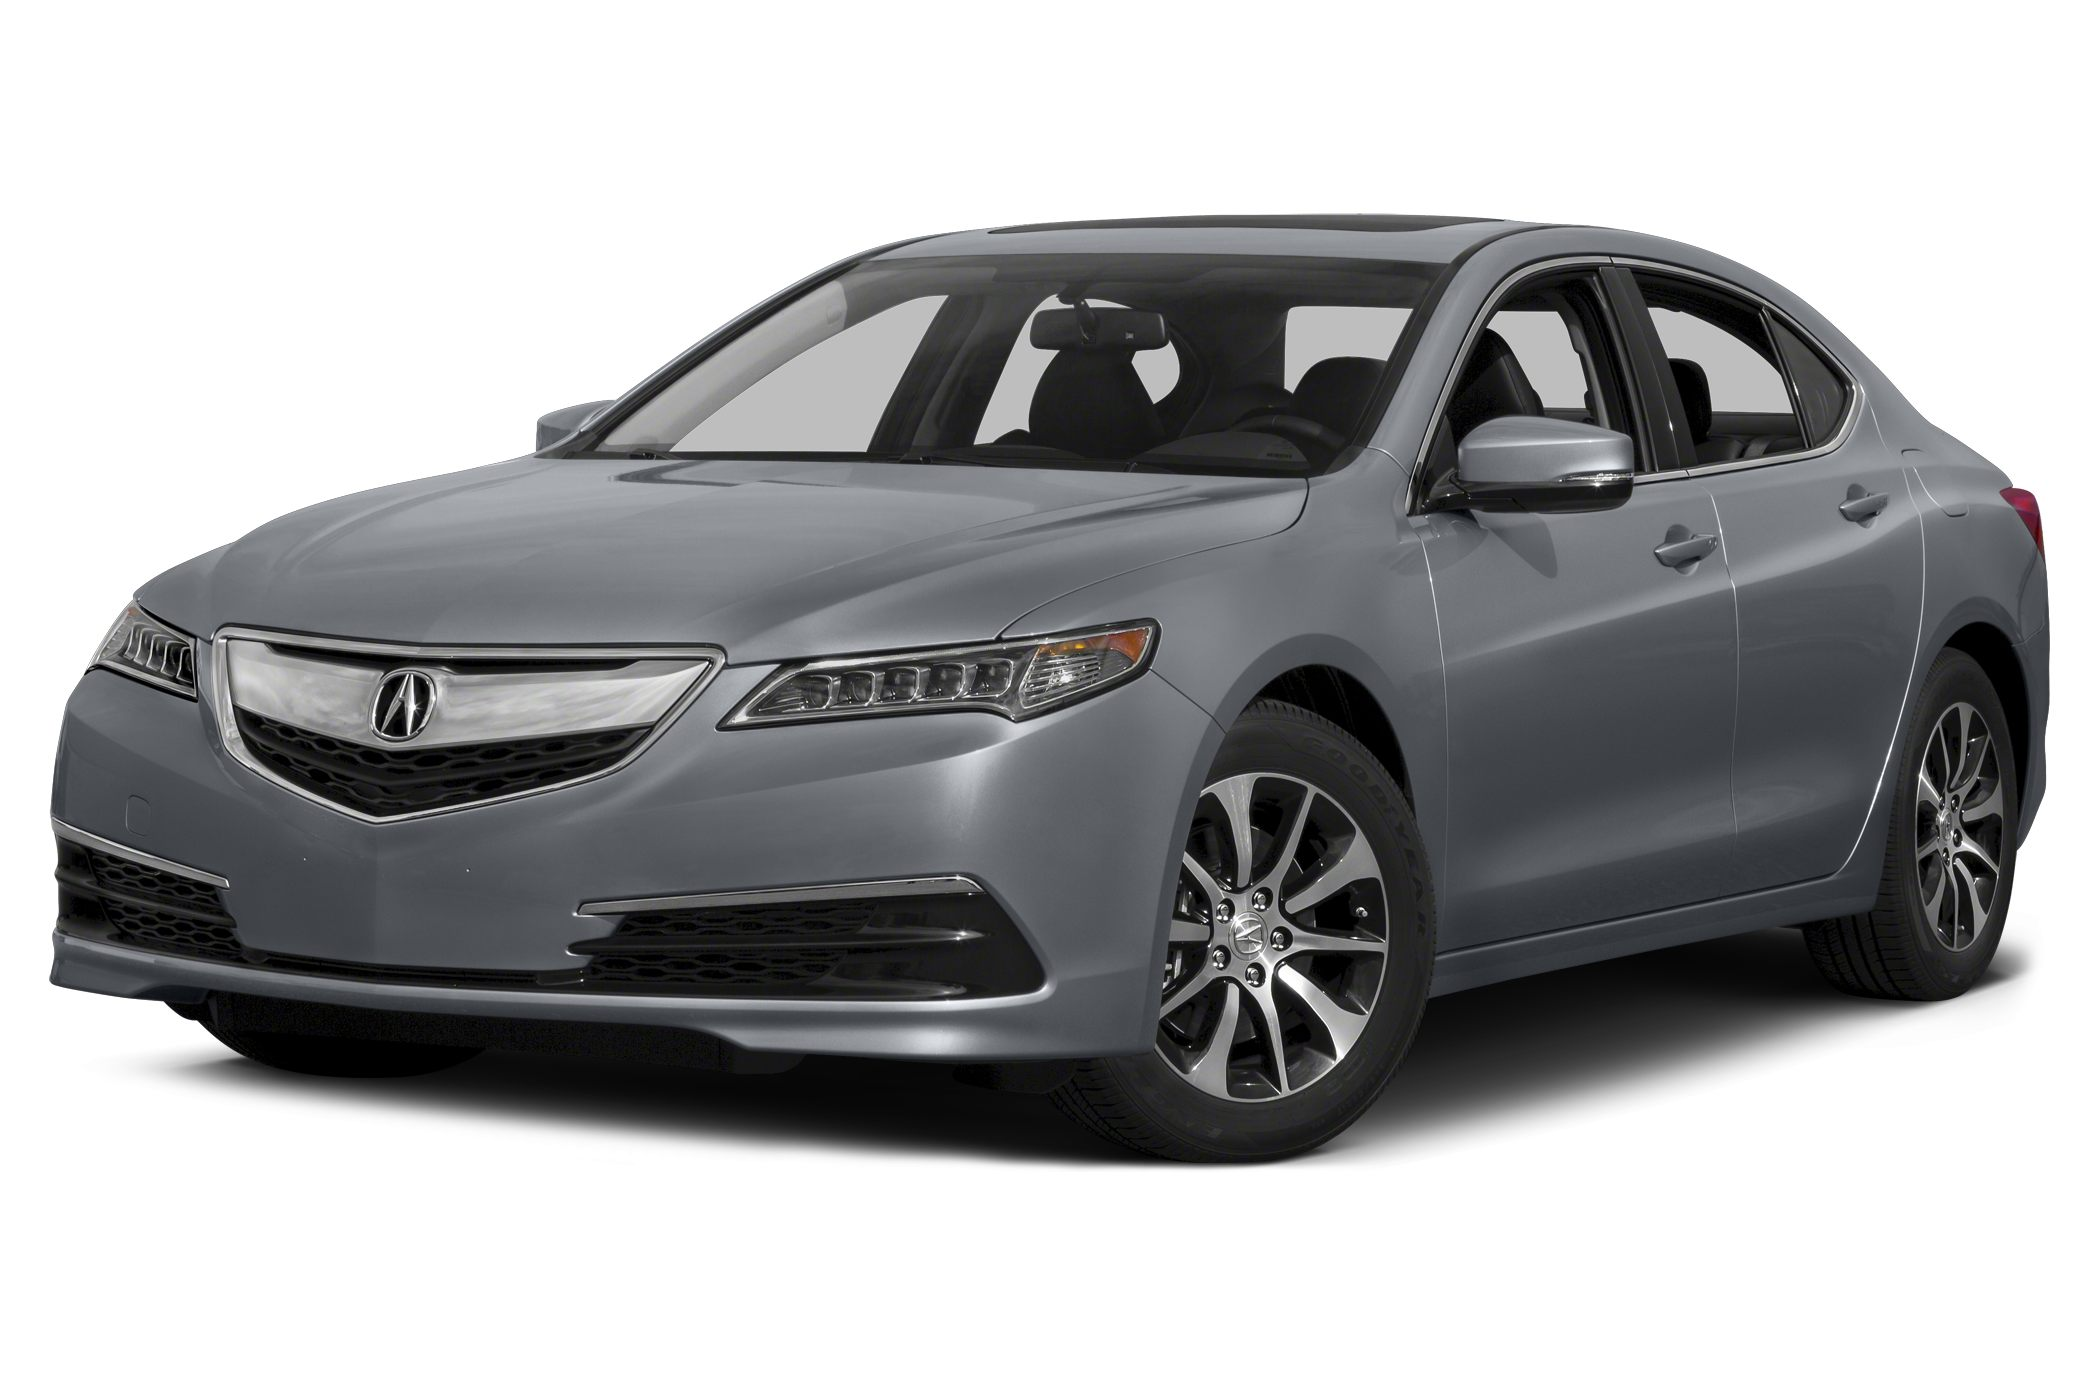 2015 Acura TLX Safety Recalls